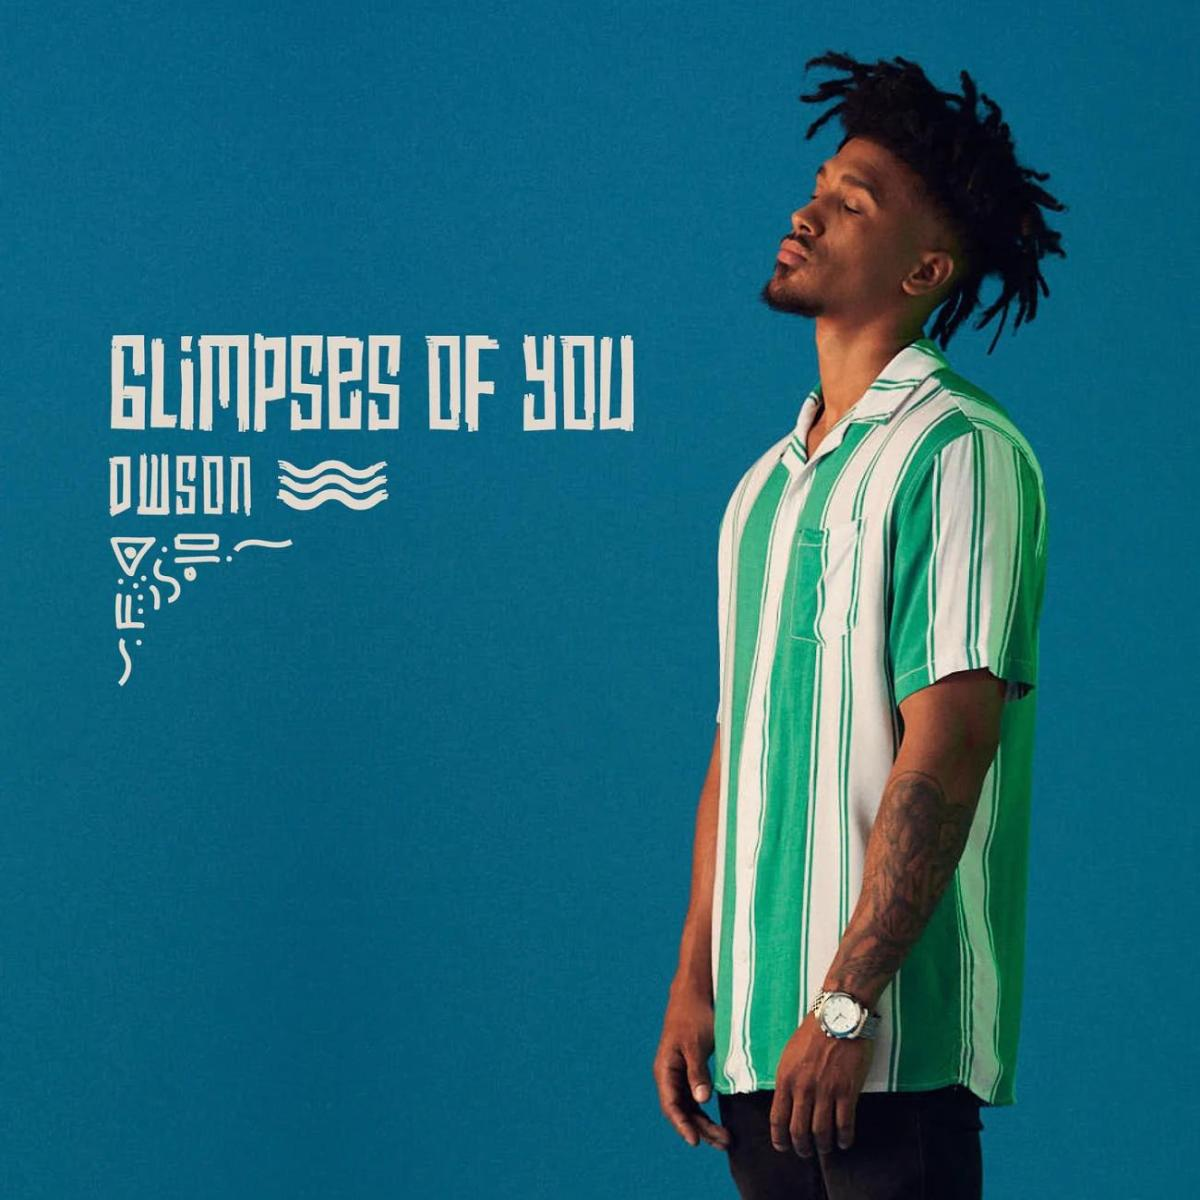 Dwson - Glimpses of You EP